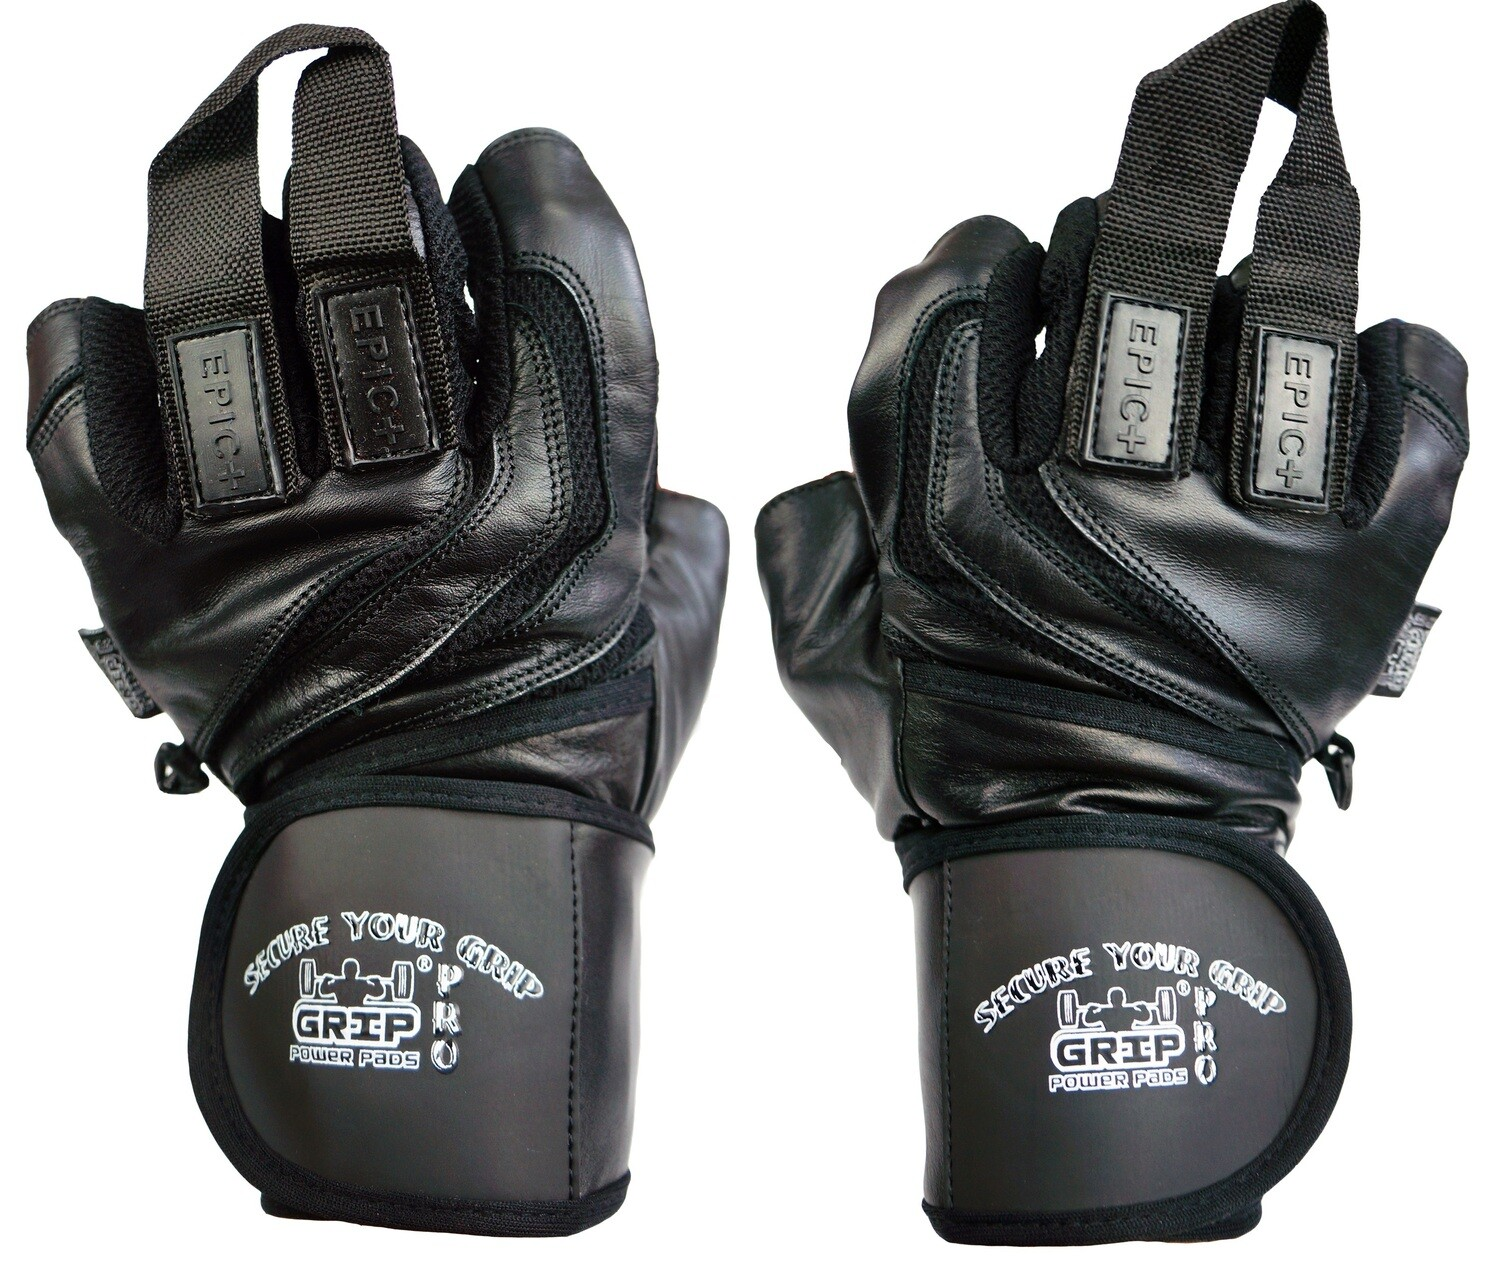 """Epic Leather Gym Gloves with Built in 2"""" Wide Wrist Wraps Best Grip & Design for Weightlifting Power Lifting Bodybuilding & Strength Training Workout Exercises"""